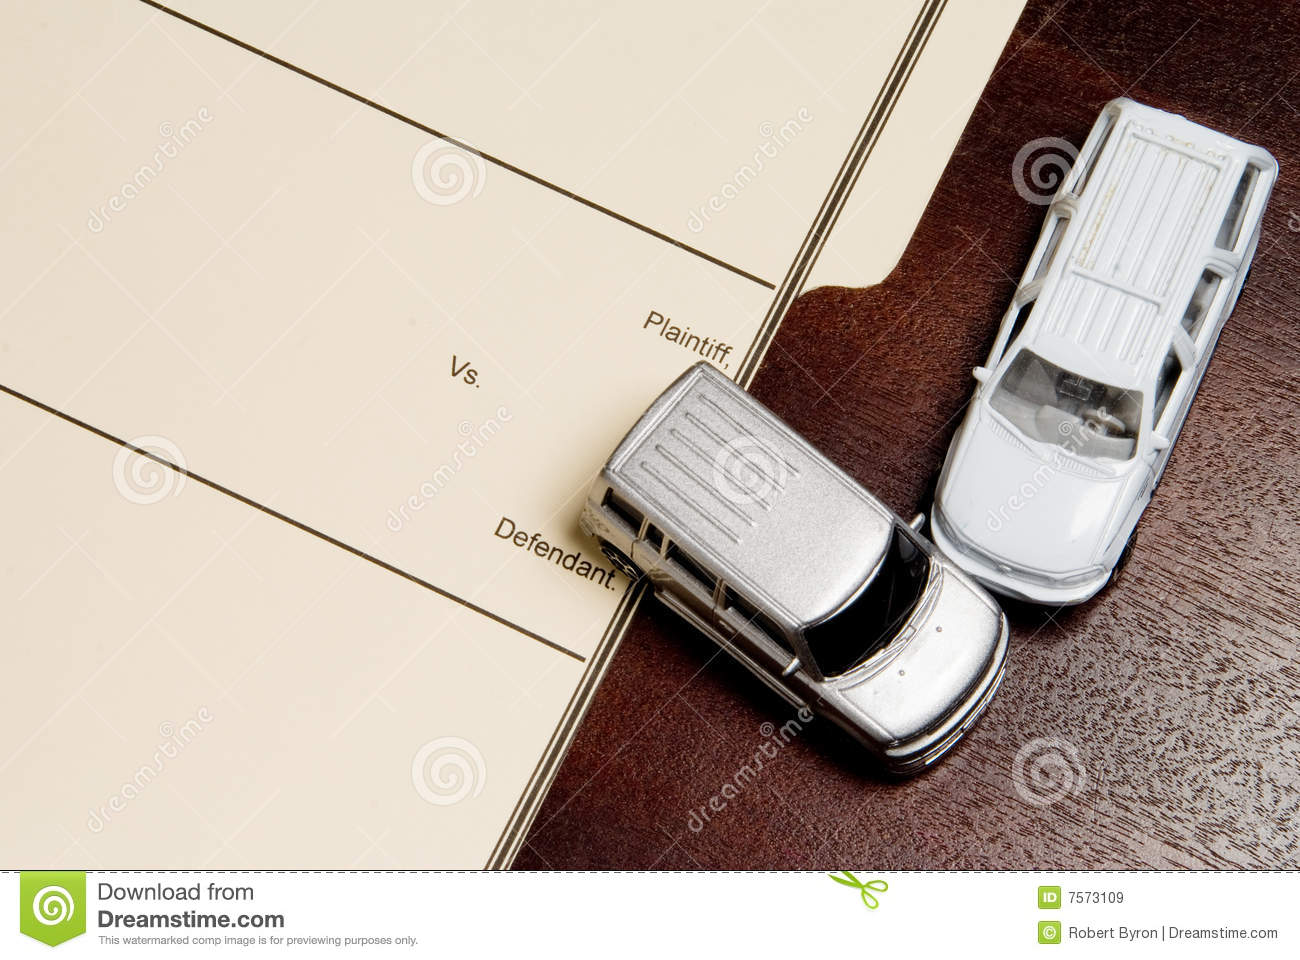 Personal Injury Lawsuit stock image  Image of suit, process